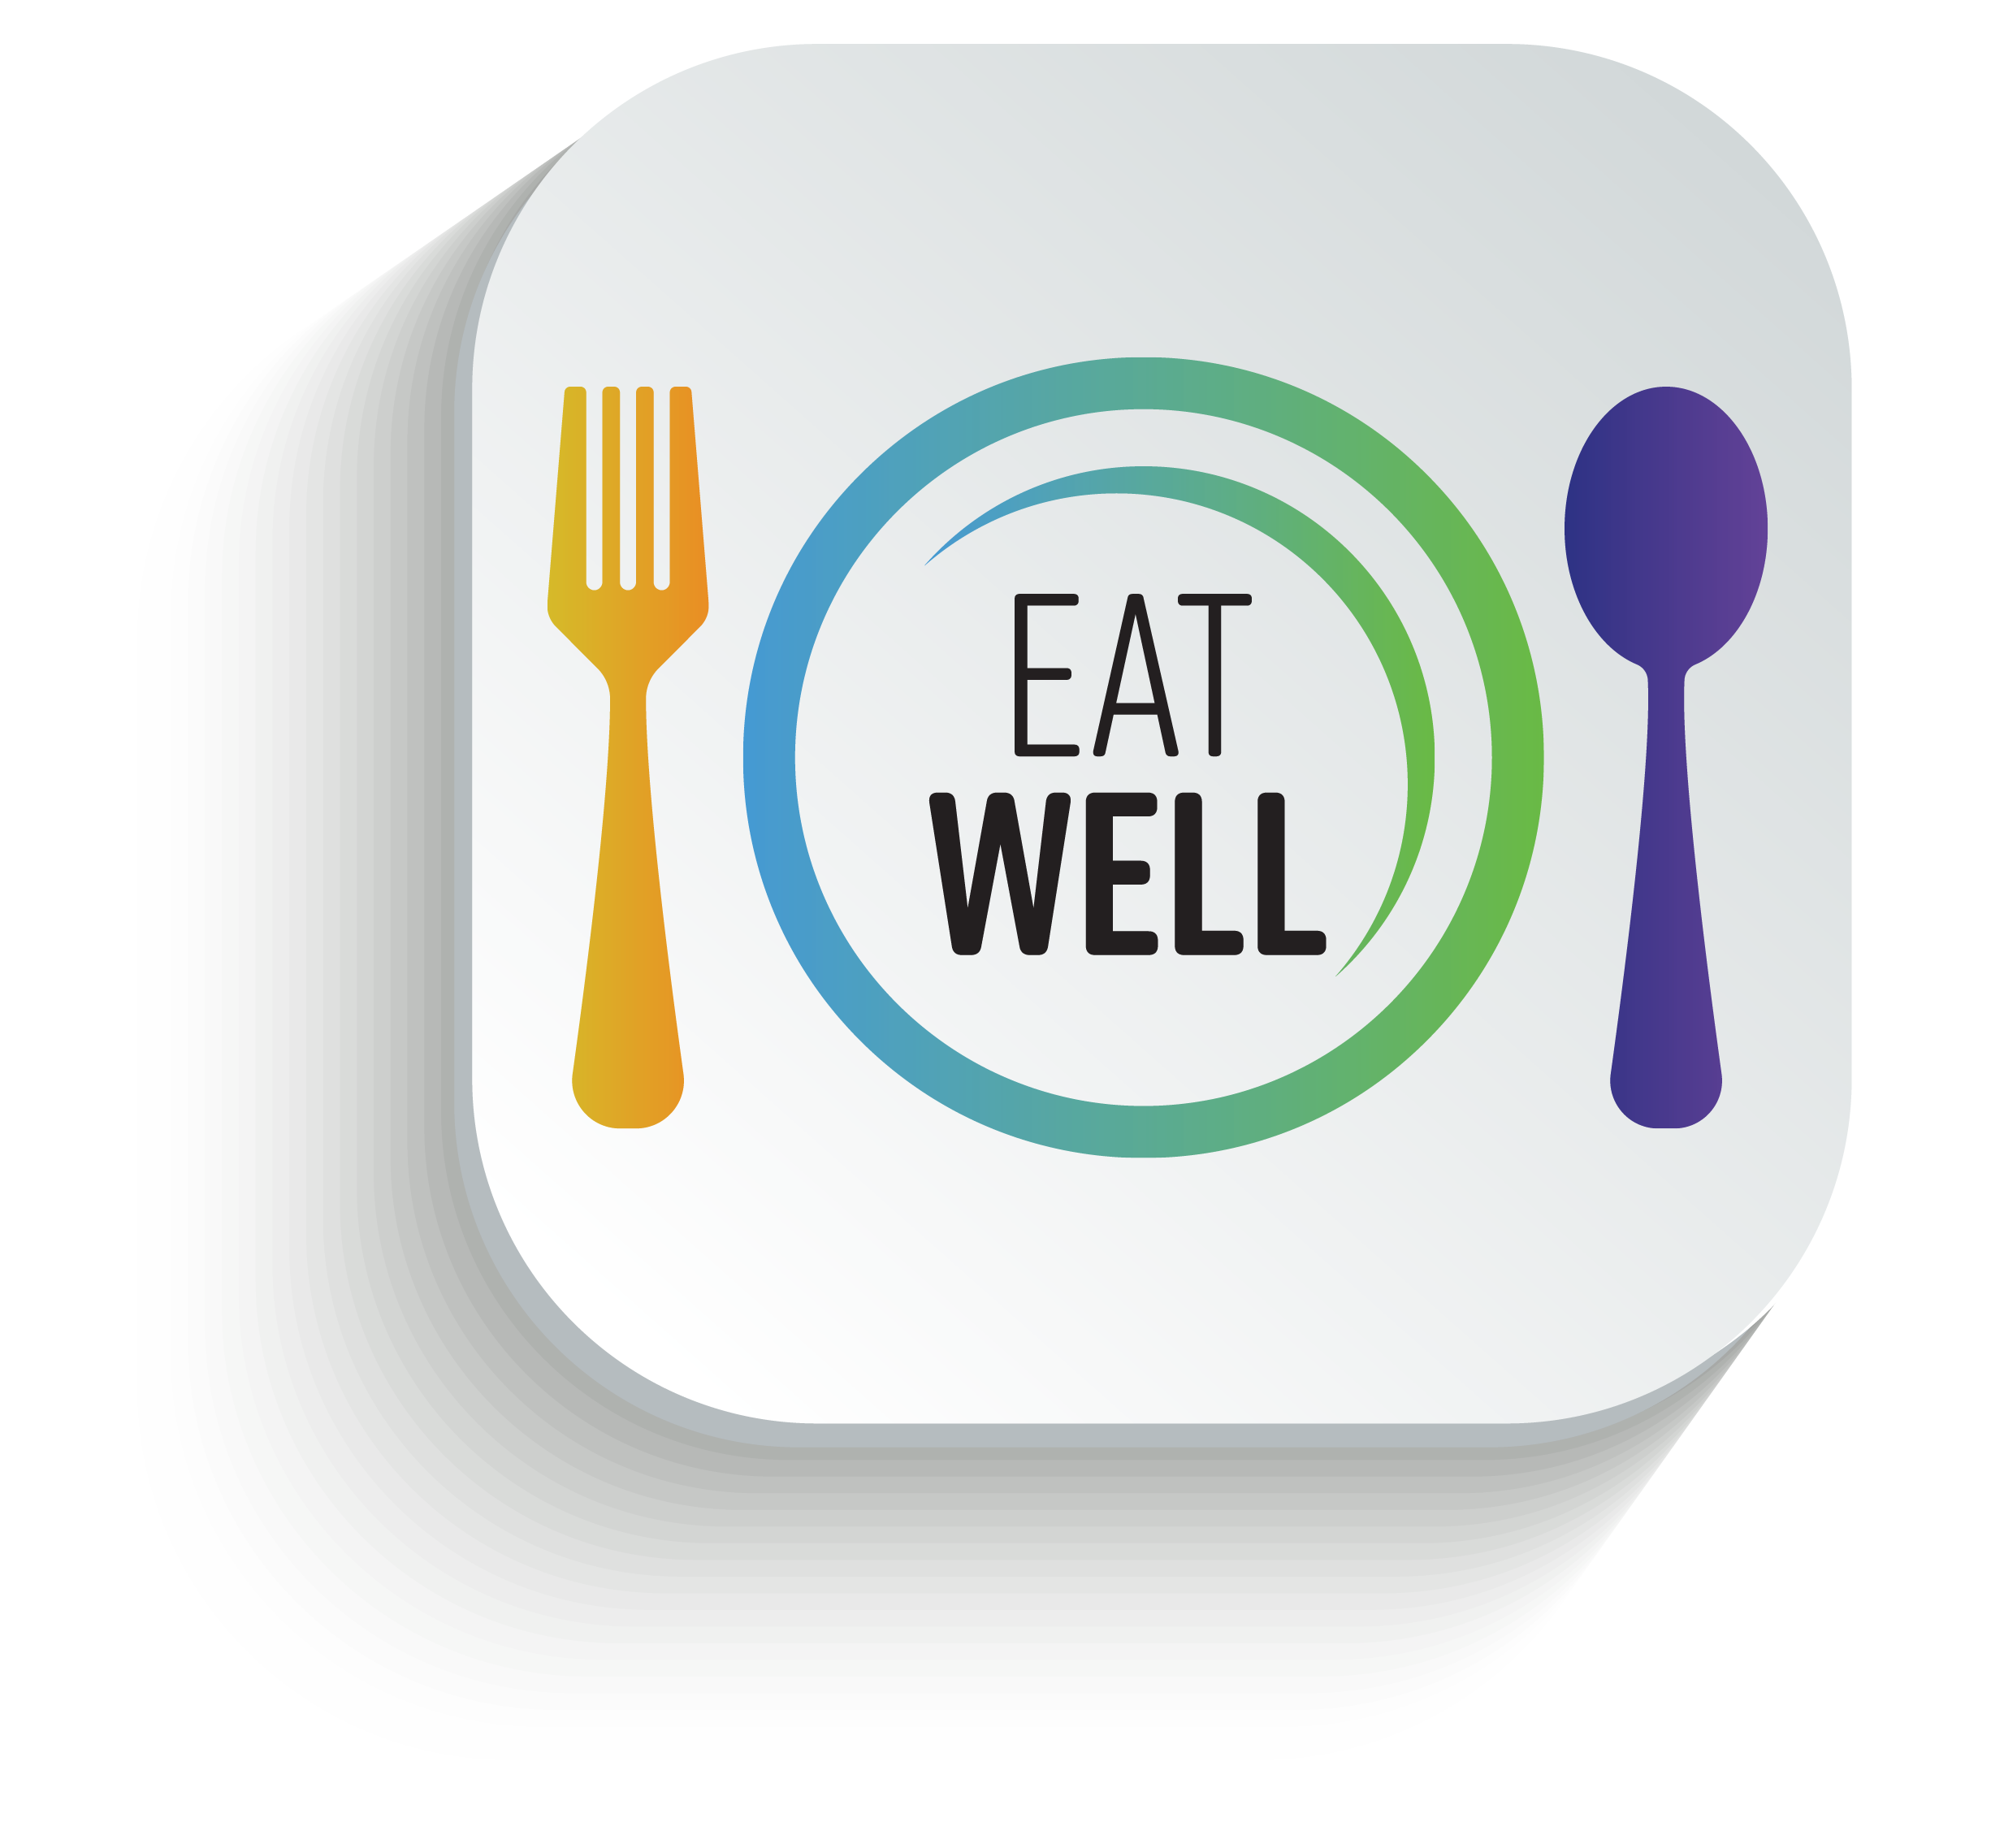 Eat Well - Plate with Fork and Spoon